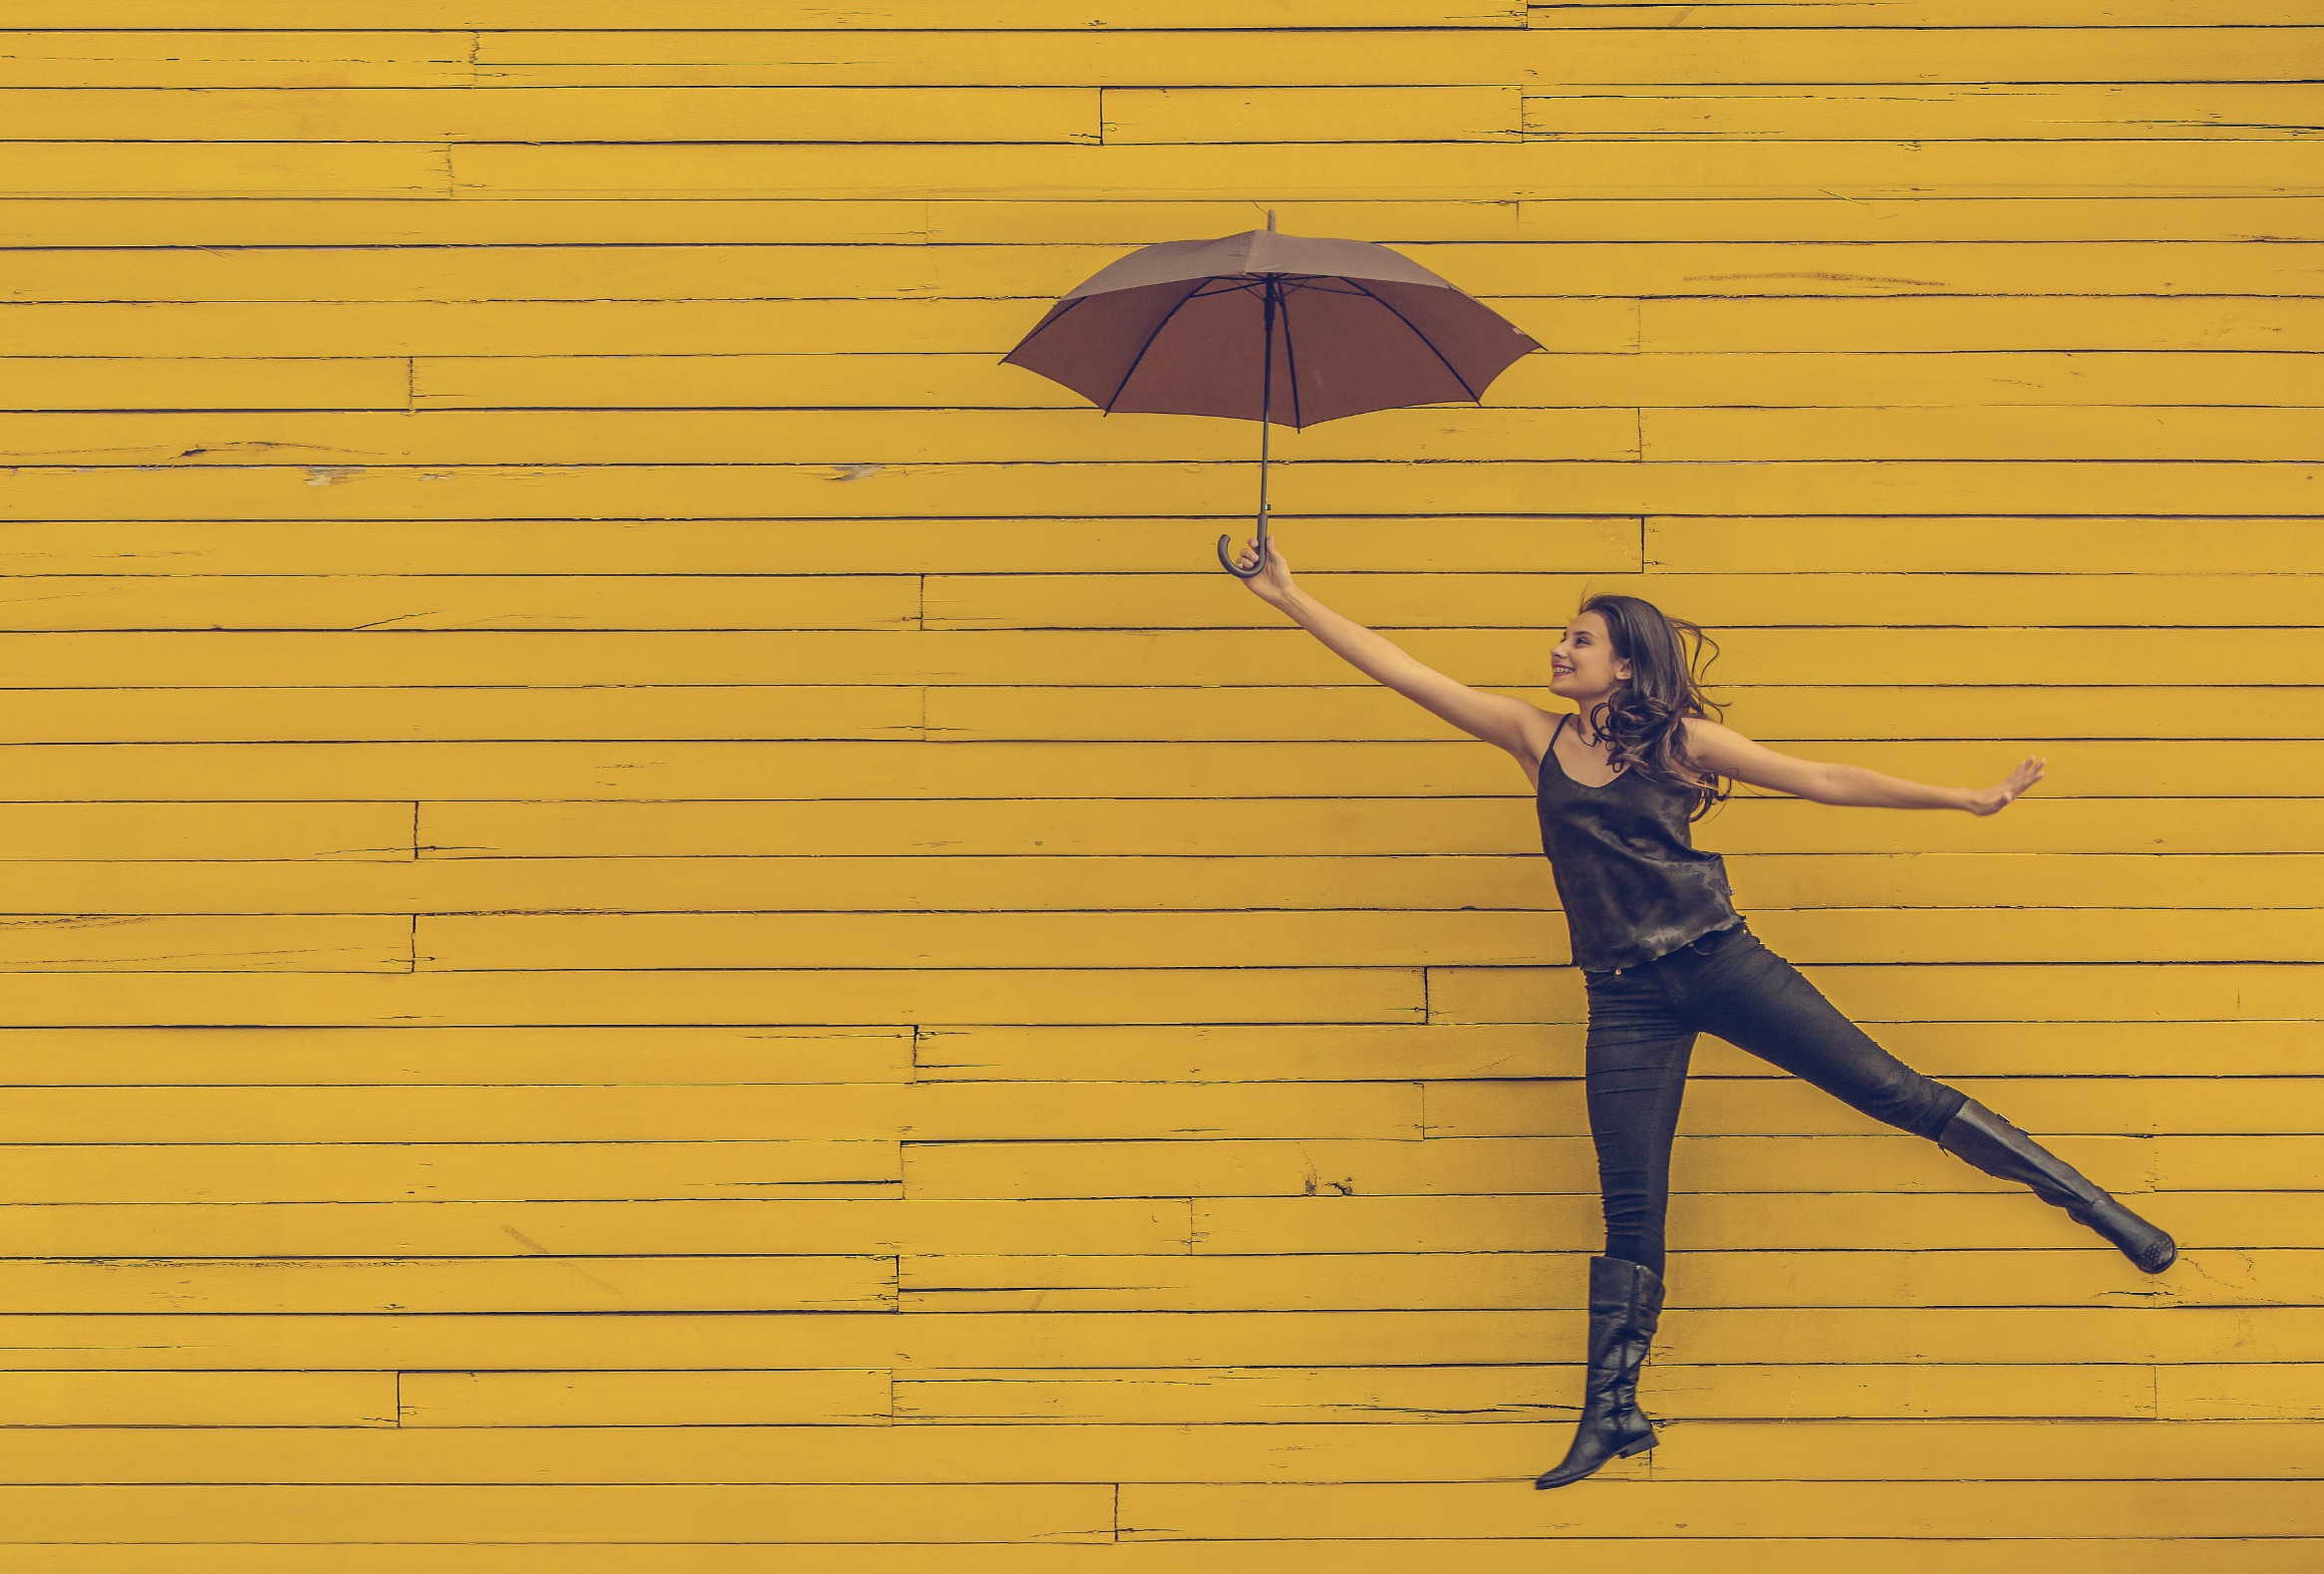 Cultivating Happiness image jumping with an umbrella